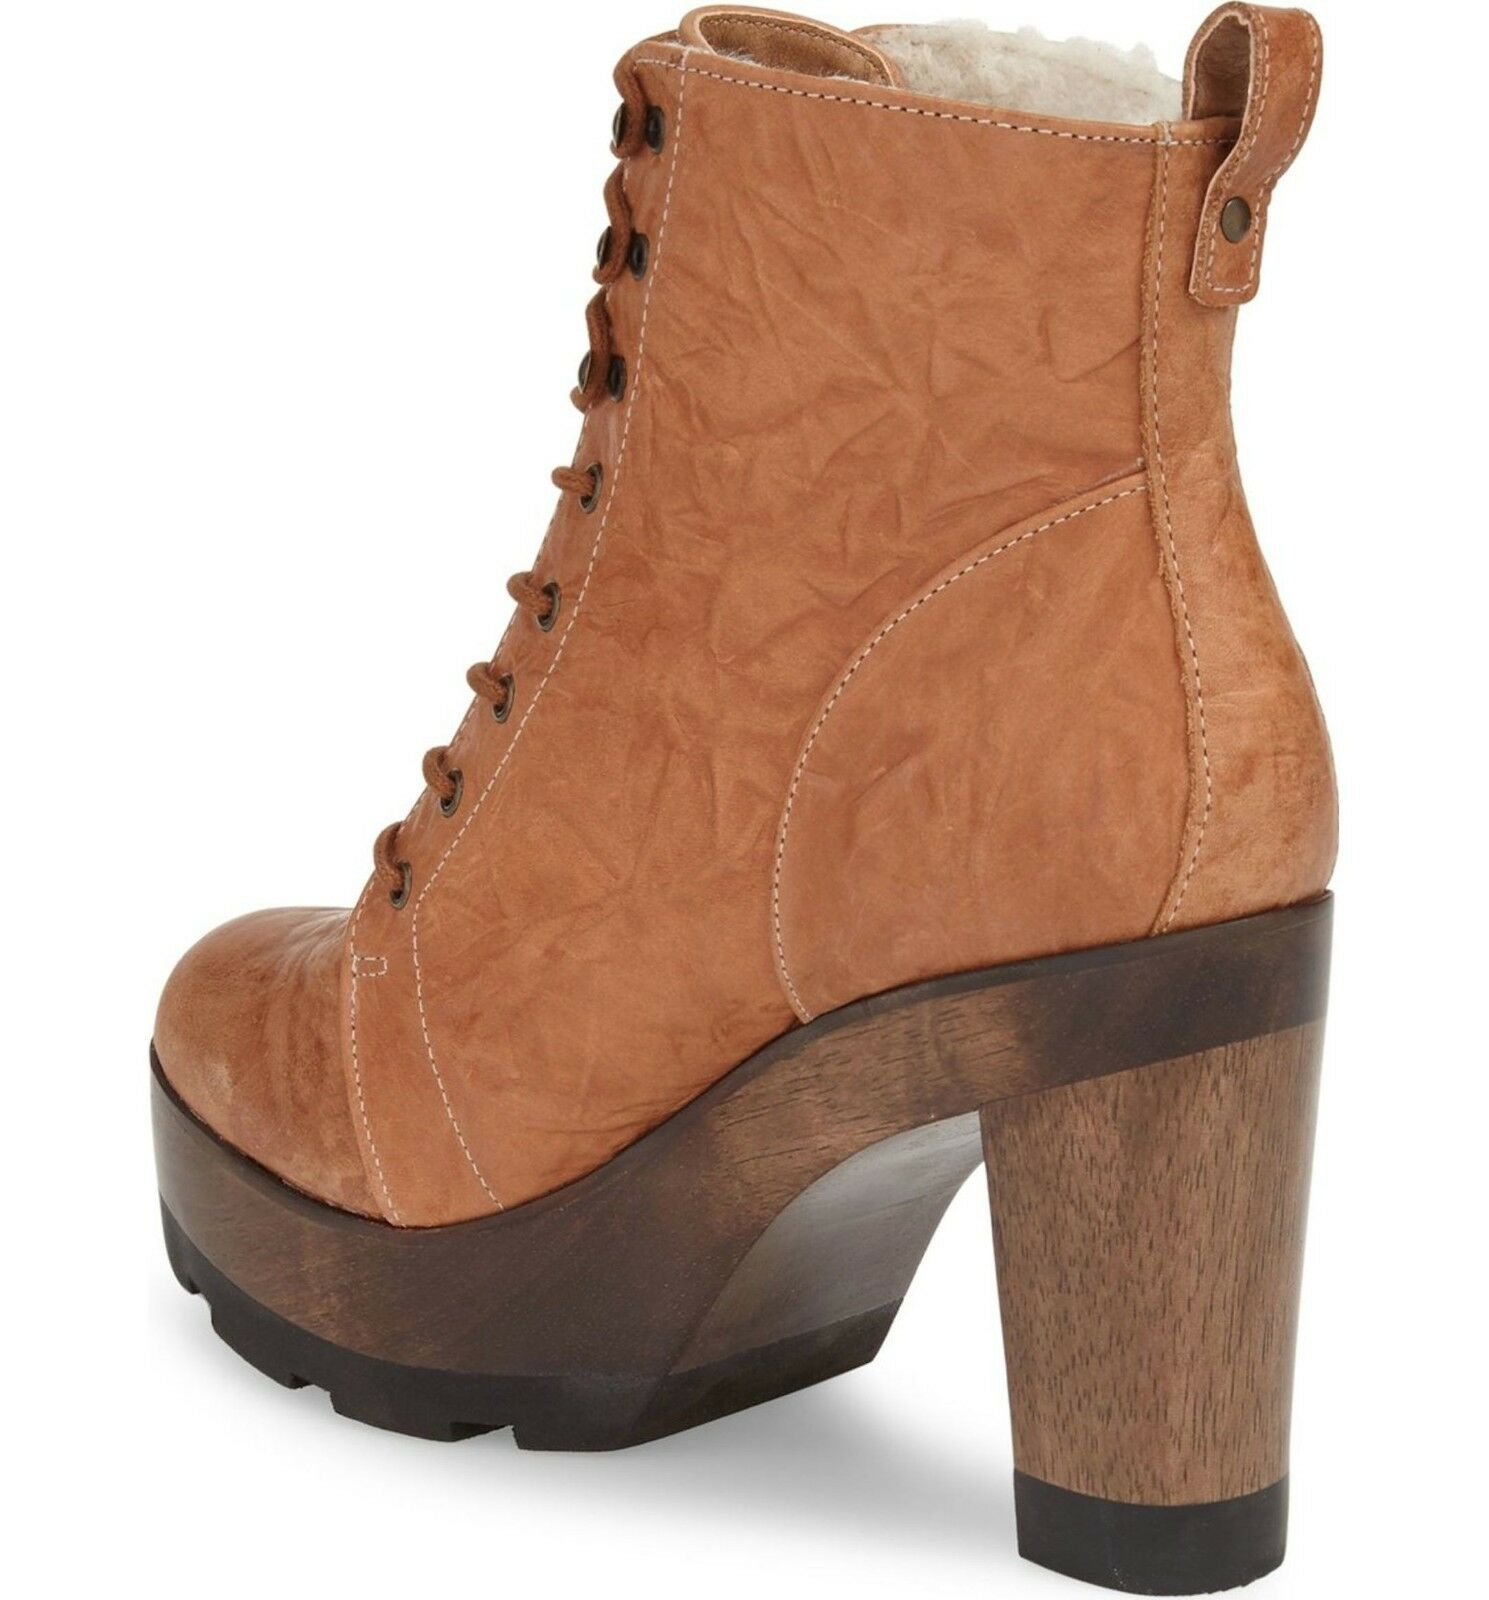 Kelsi Dagger Brooklyn 'Farren Vintage' Platform Bootie Tan Brown 8 8.5 200 NEW